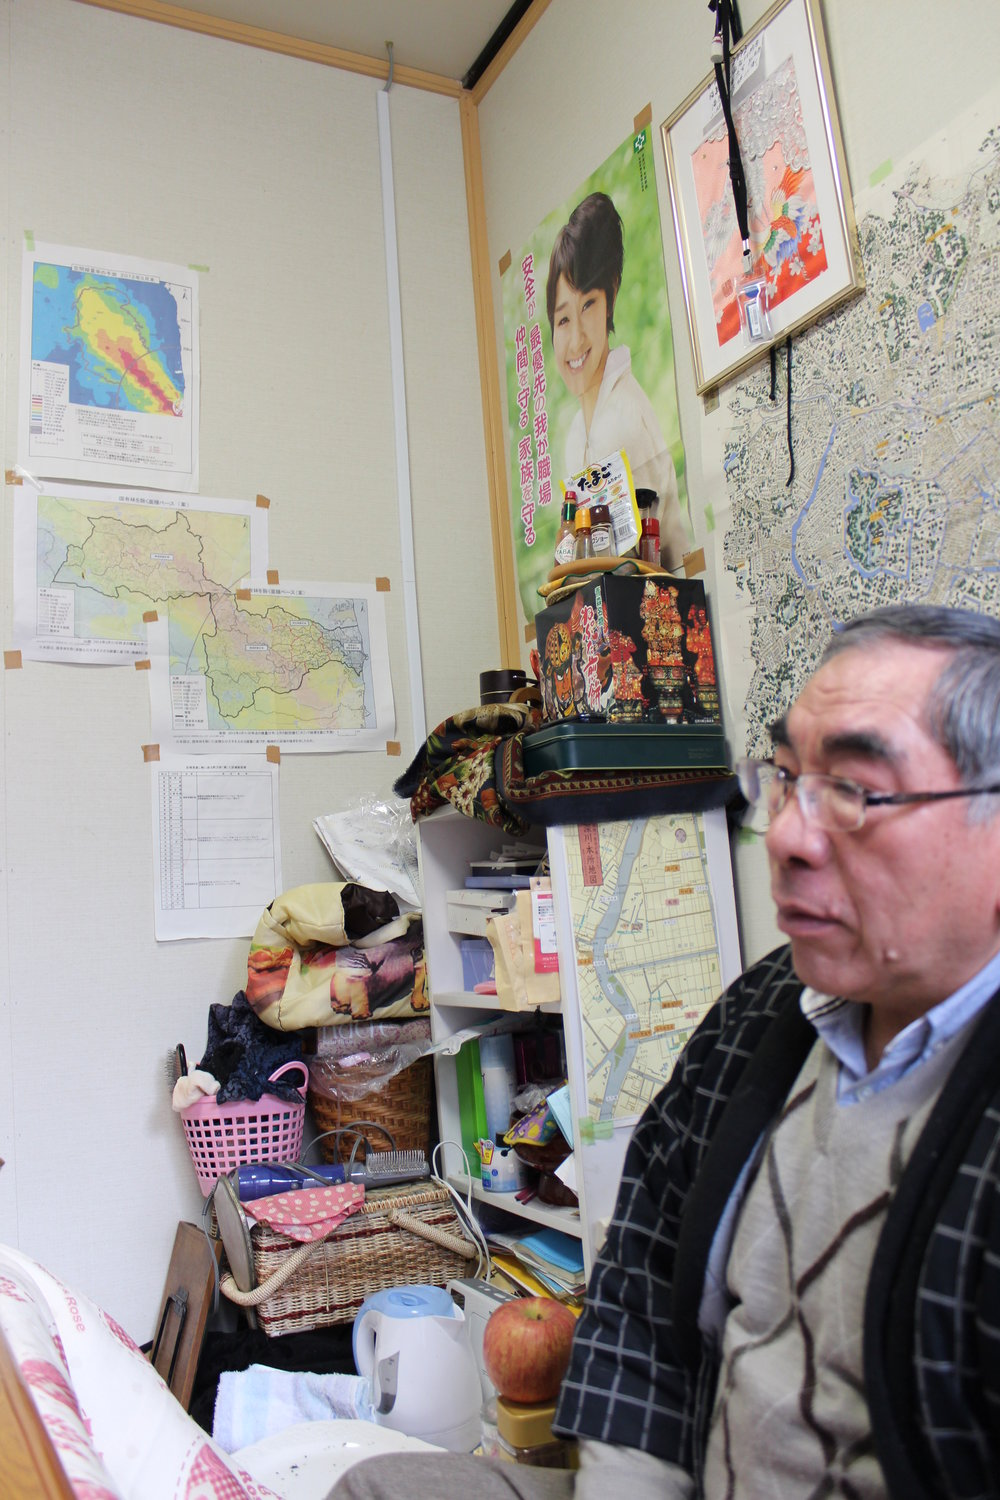 He lost his home due to Fukushima radiation and now lives in a cramped trailer, far from home.JPG